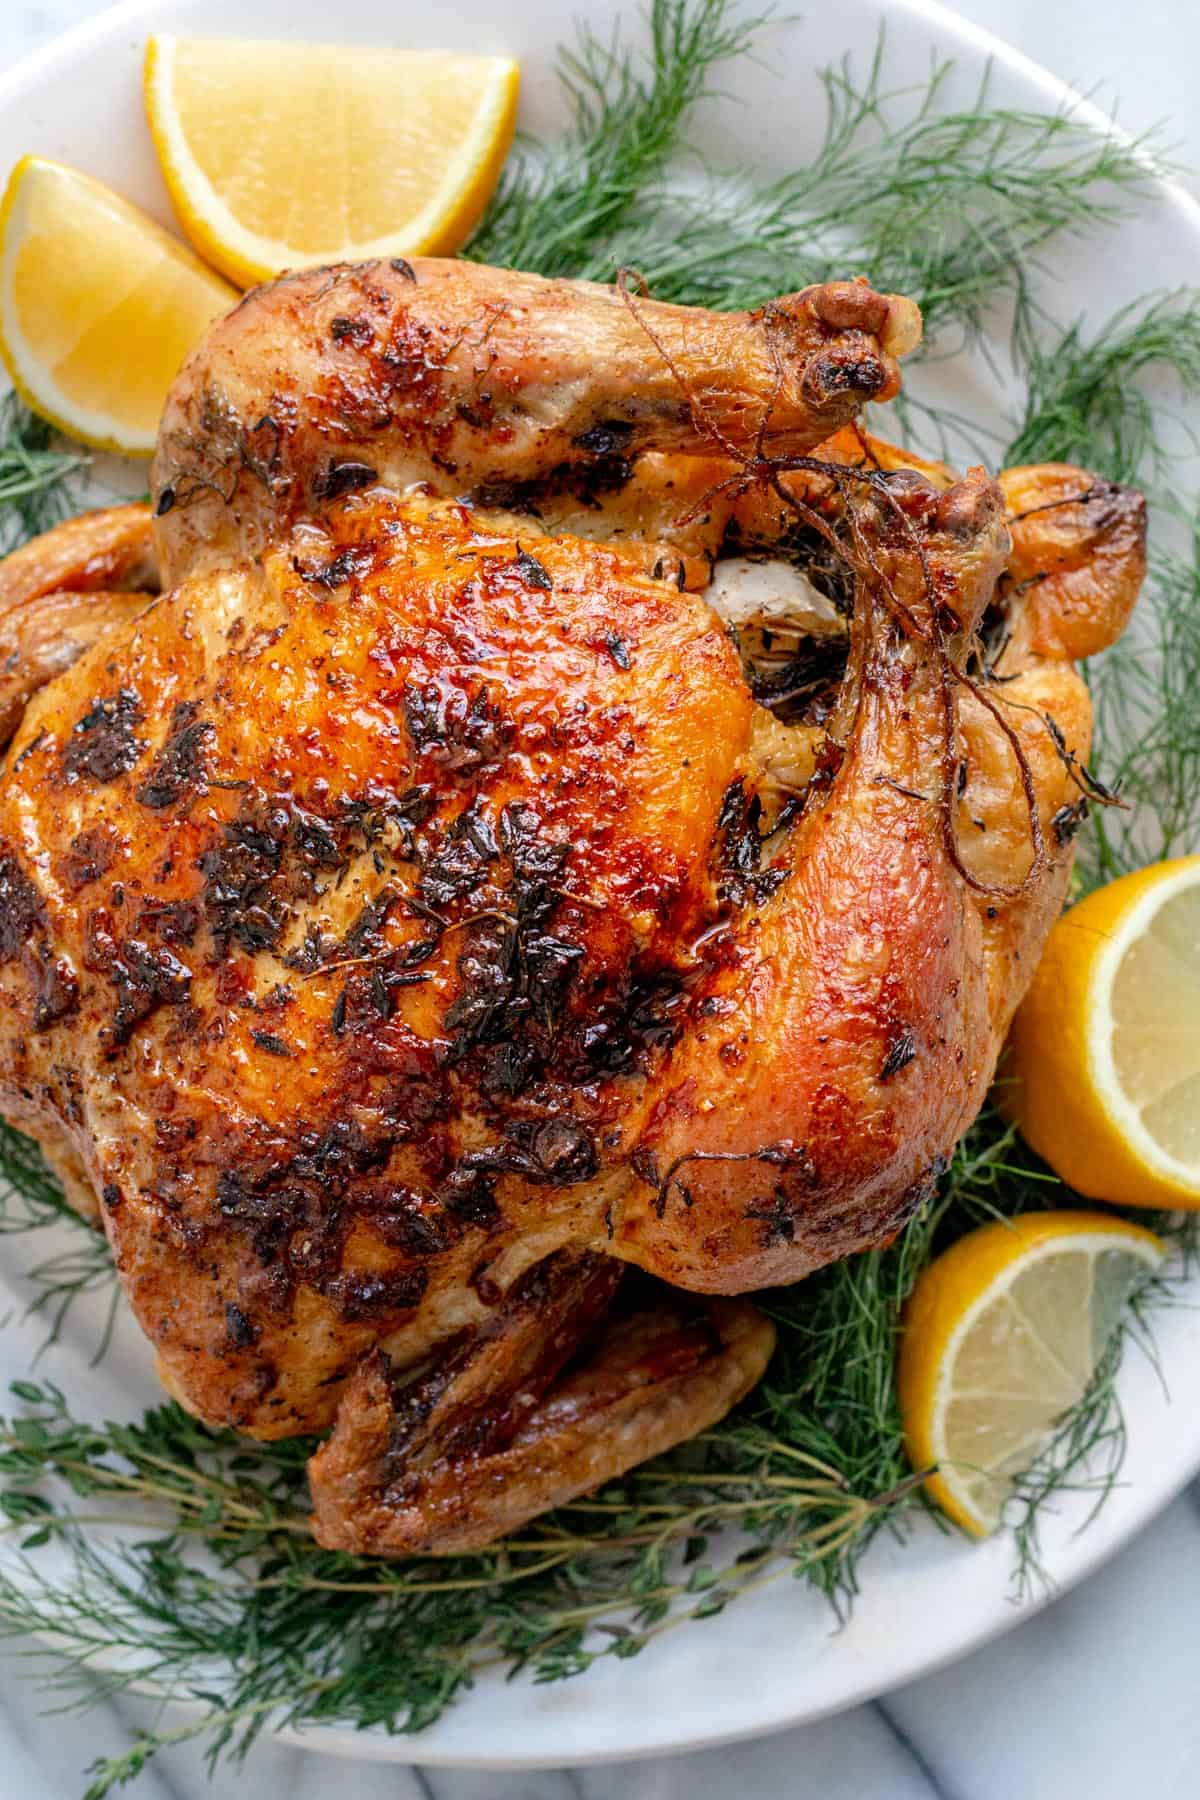 Roasted whole young chicken on white plate with herbs and lemon wedges